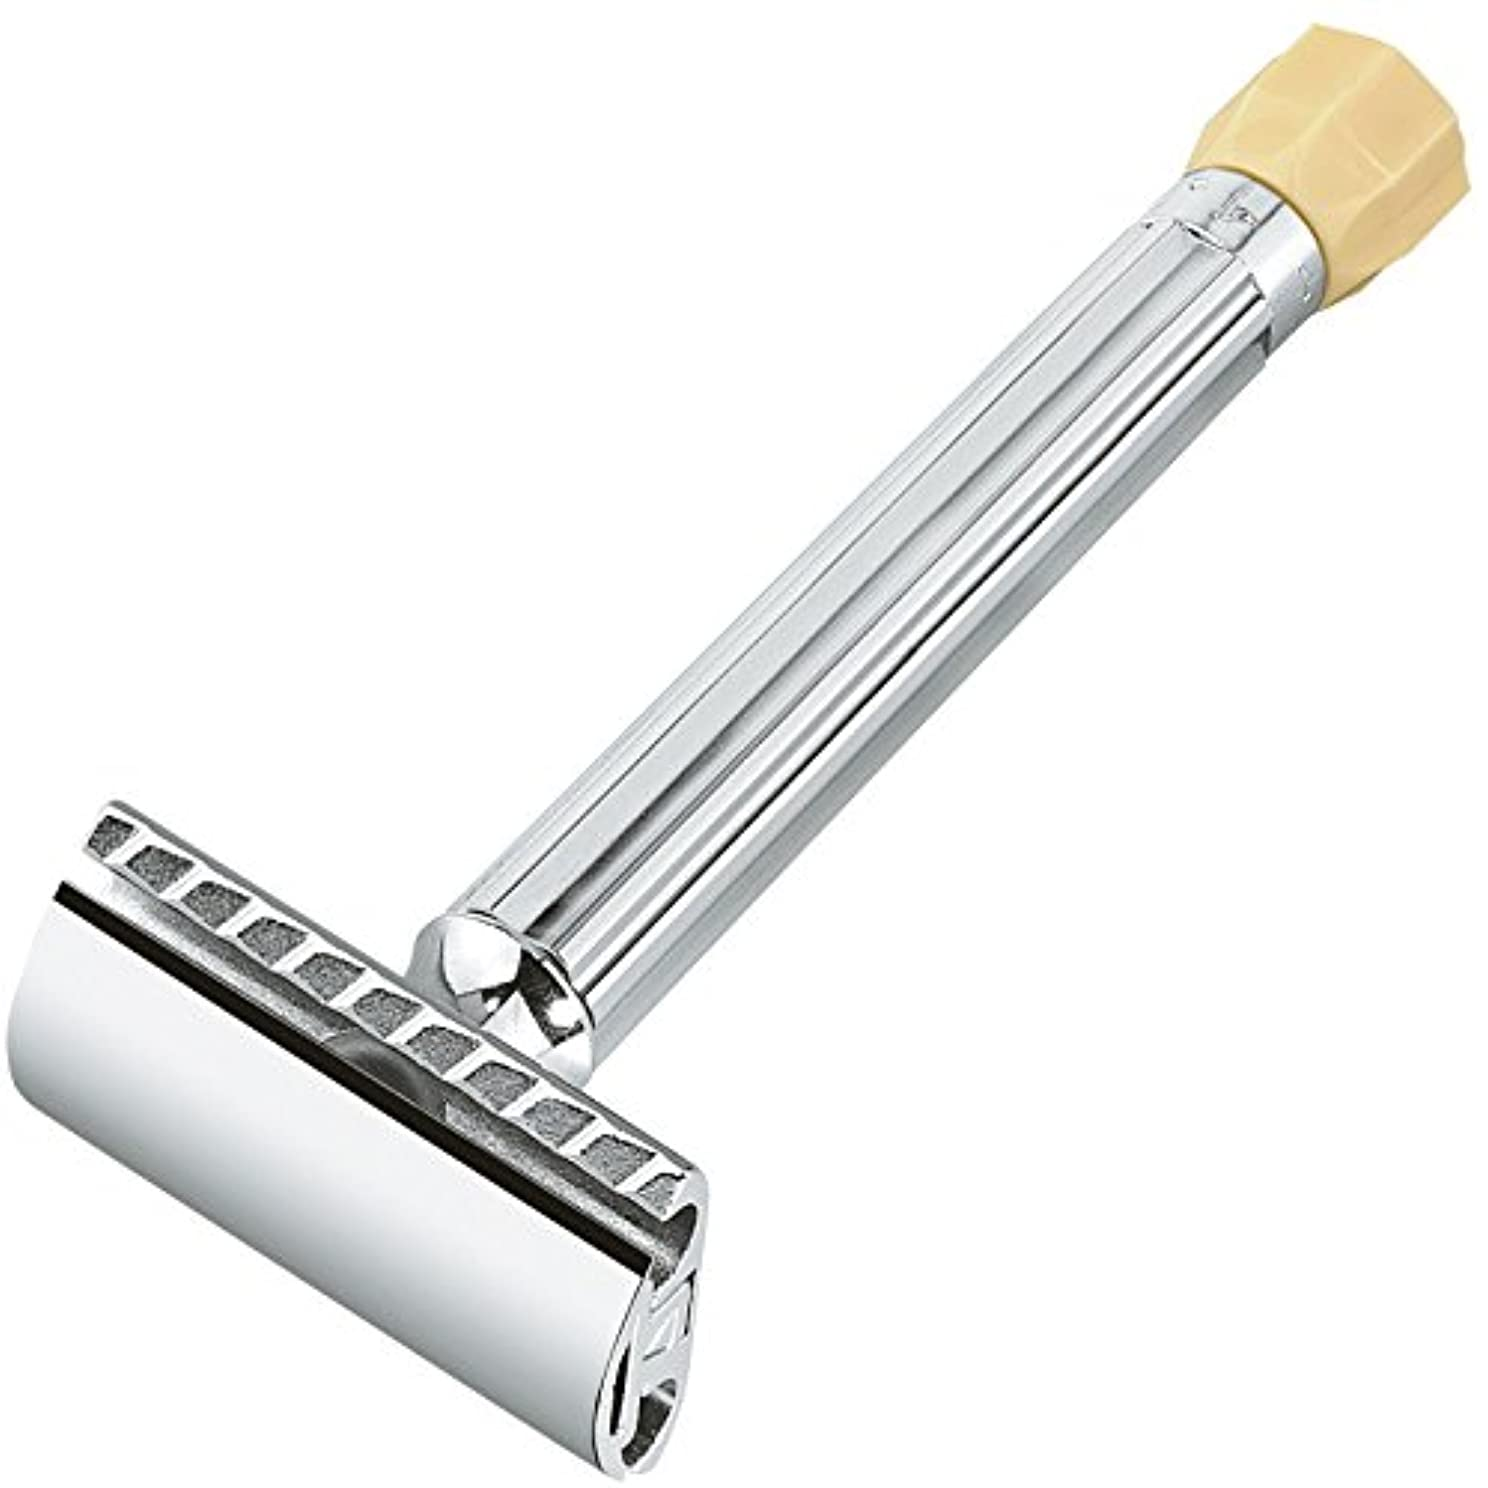 シェーバーセンチメンタル著名なMERKUR Solingen - Safety razor, long handle, blade regulation, 90510001